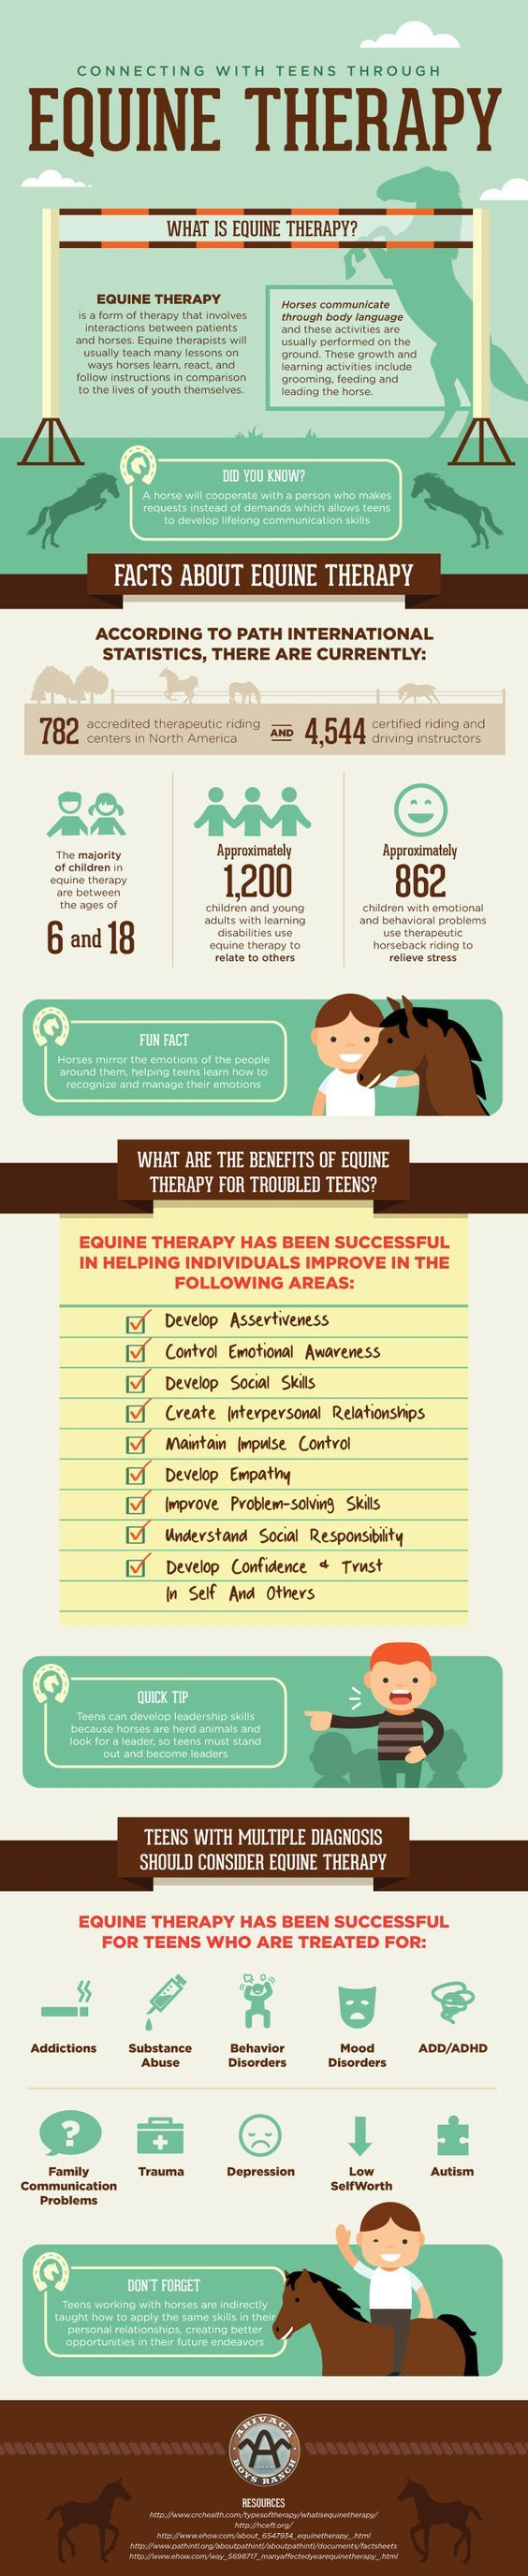 60 best Equine Assisted Therapy images on Pinterest | Horses, Horse ...